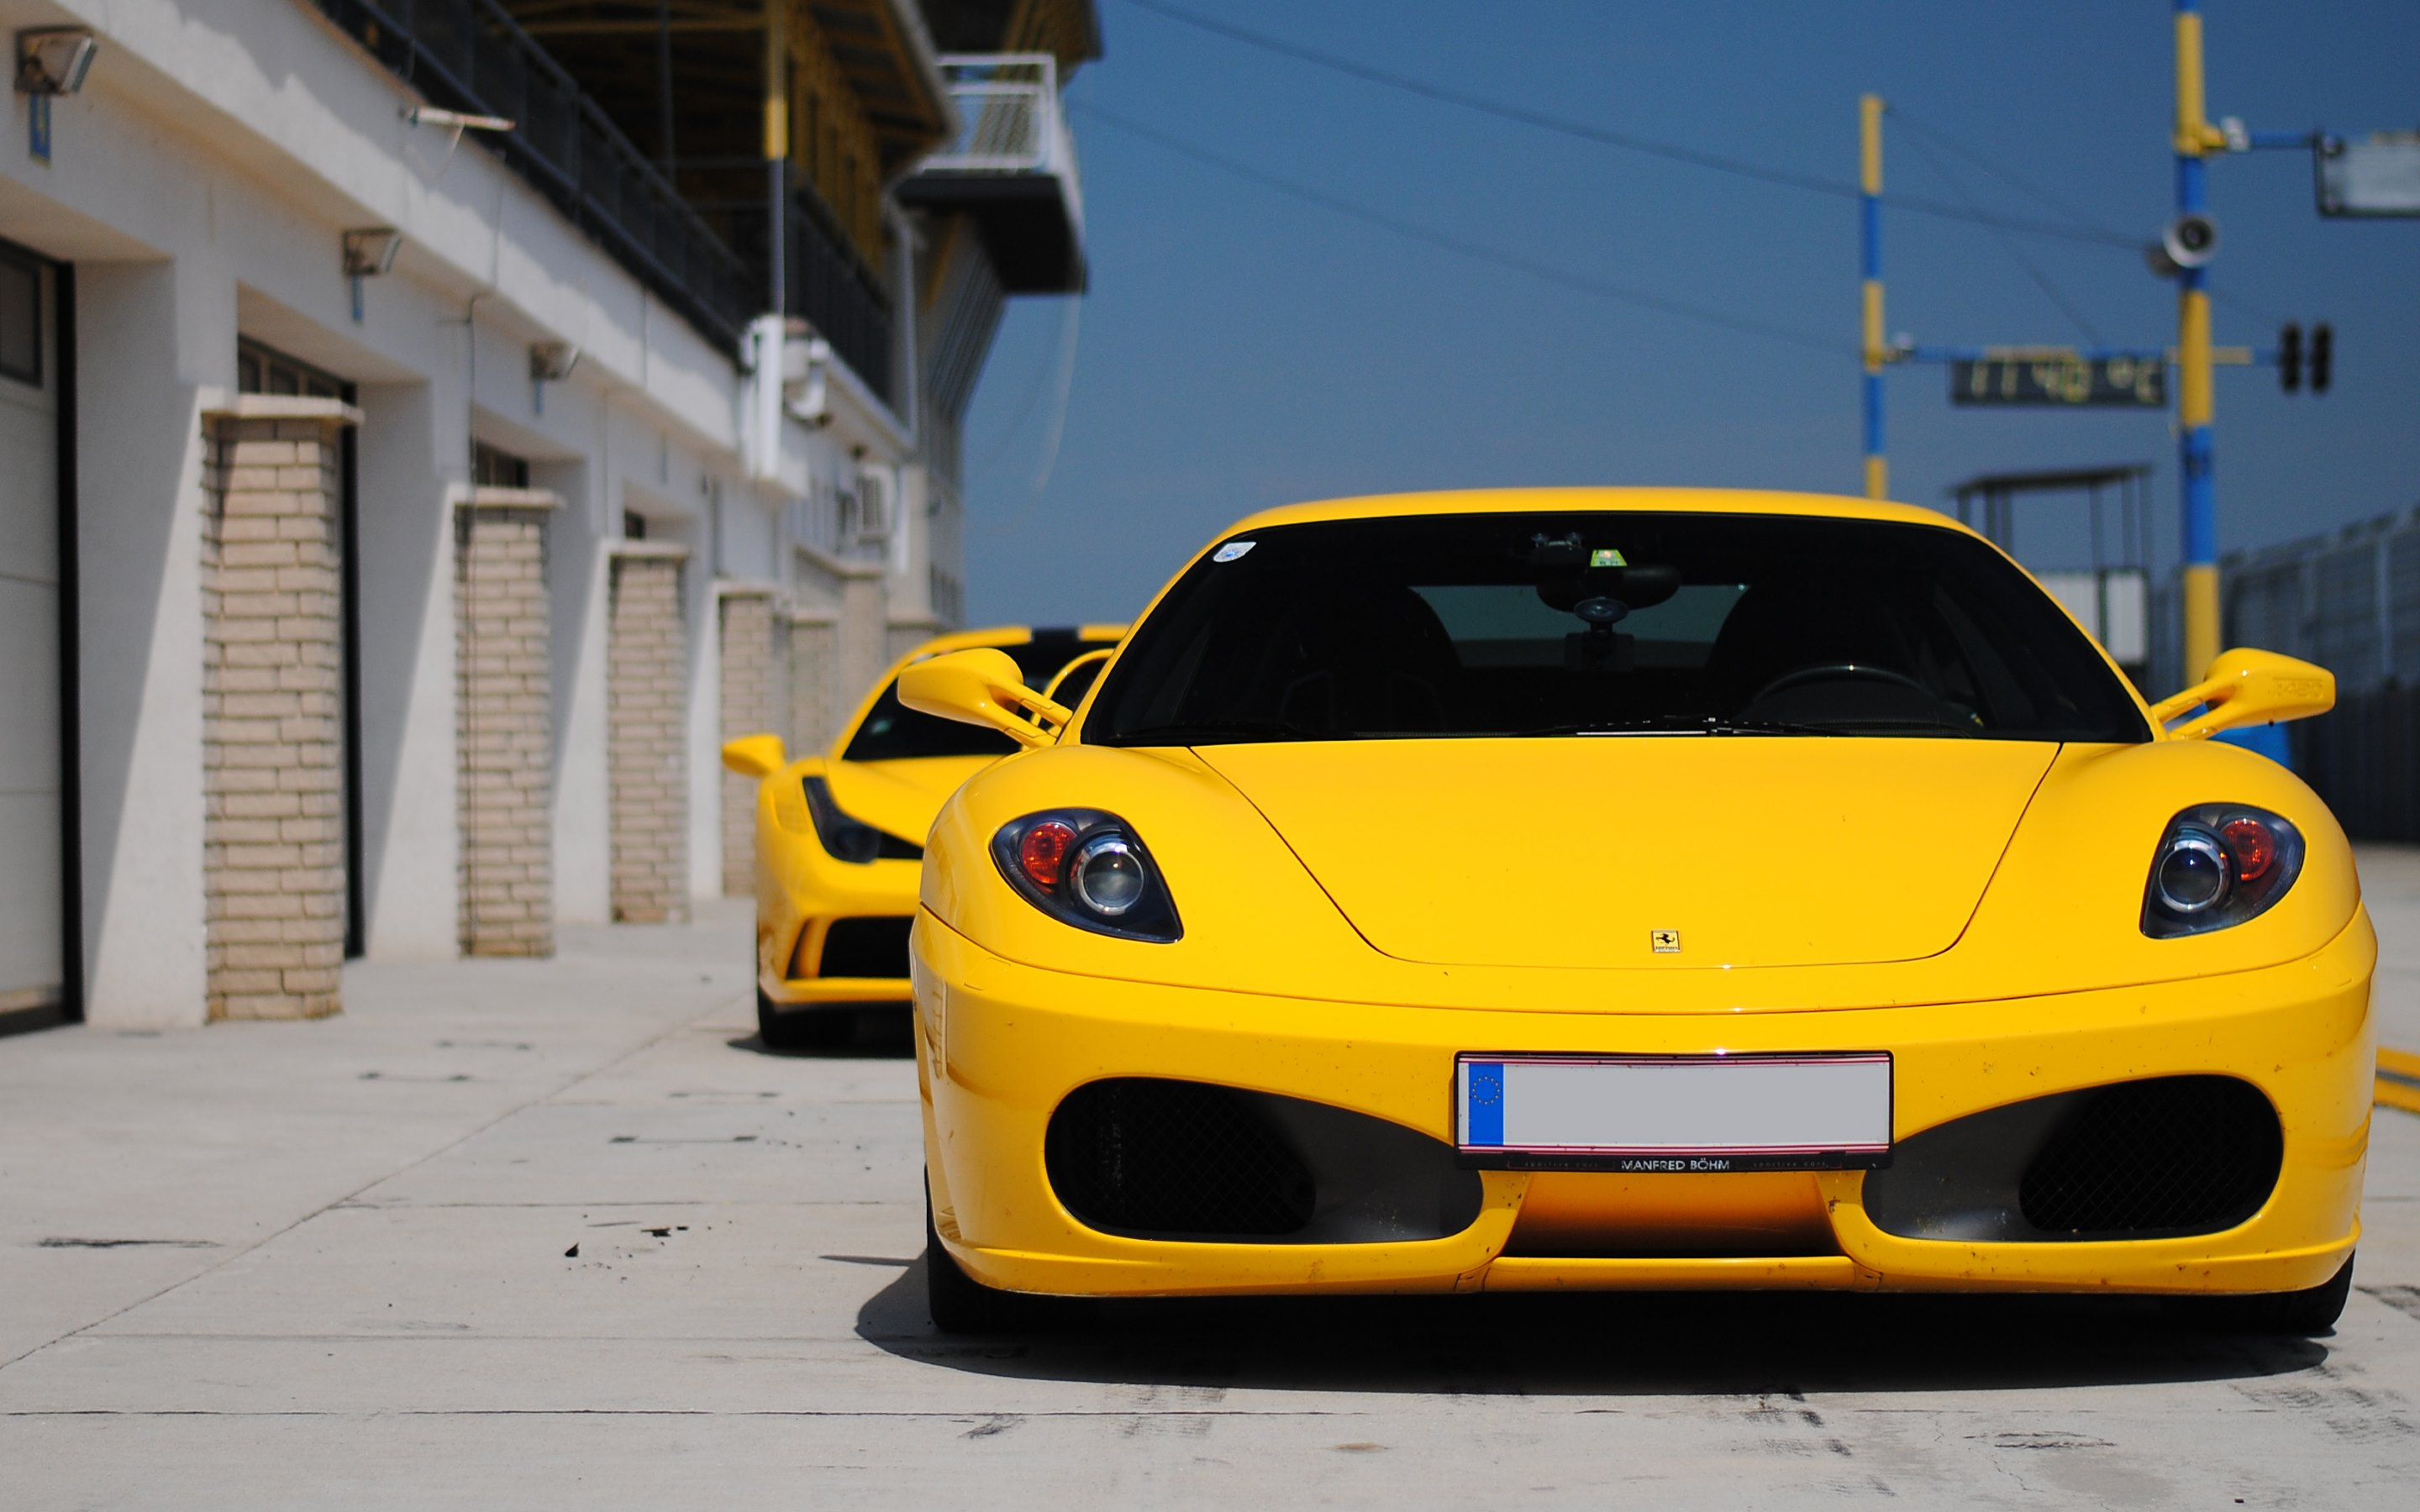 hd wallpaper hot ferrari 458 speciale and behind is a ferrari f430 - Ferrari 458 Speciale Wallpaper